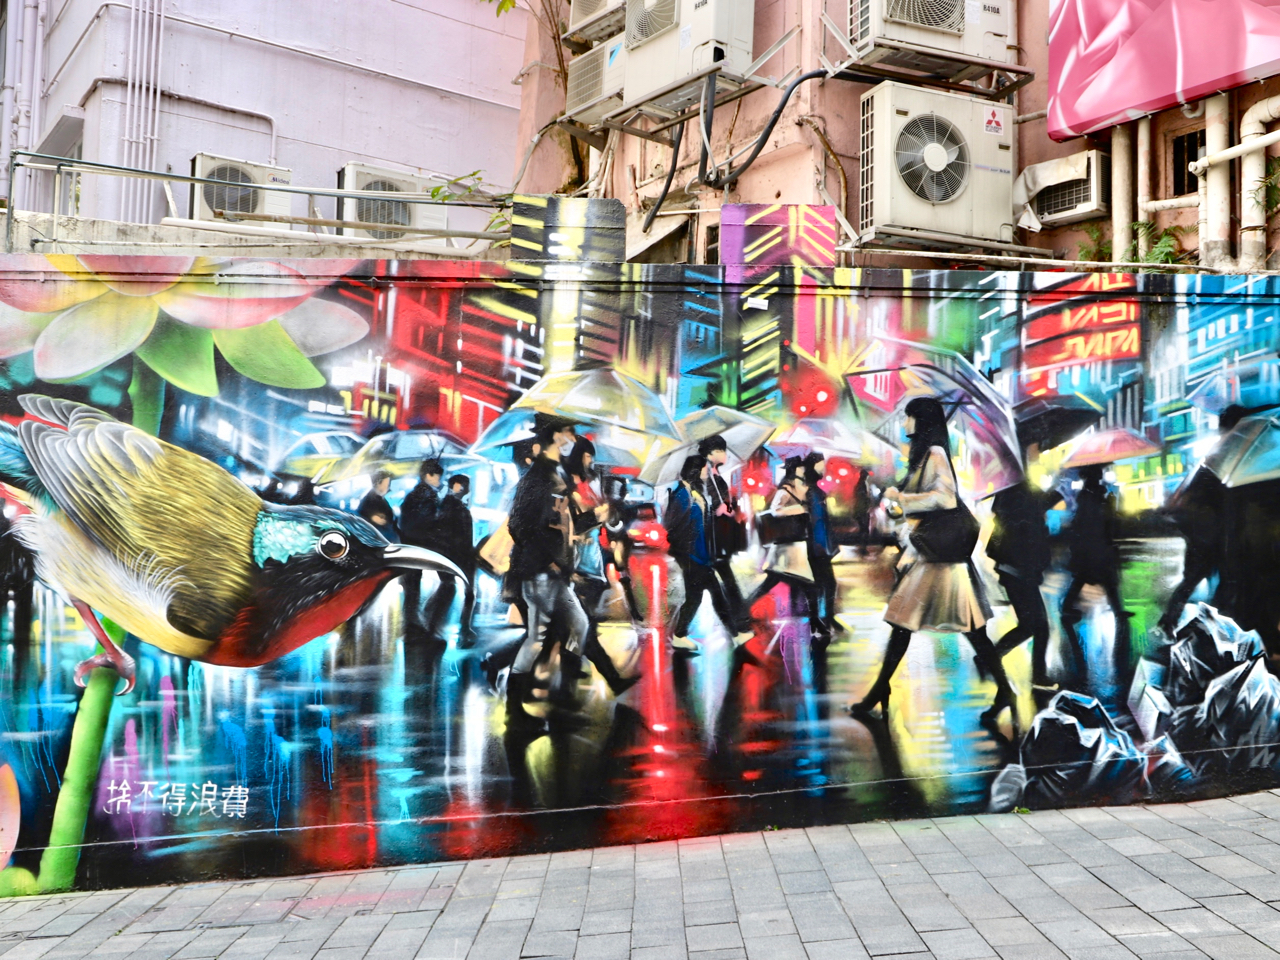 Dan Kitchener on Elgin Street